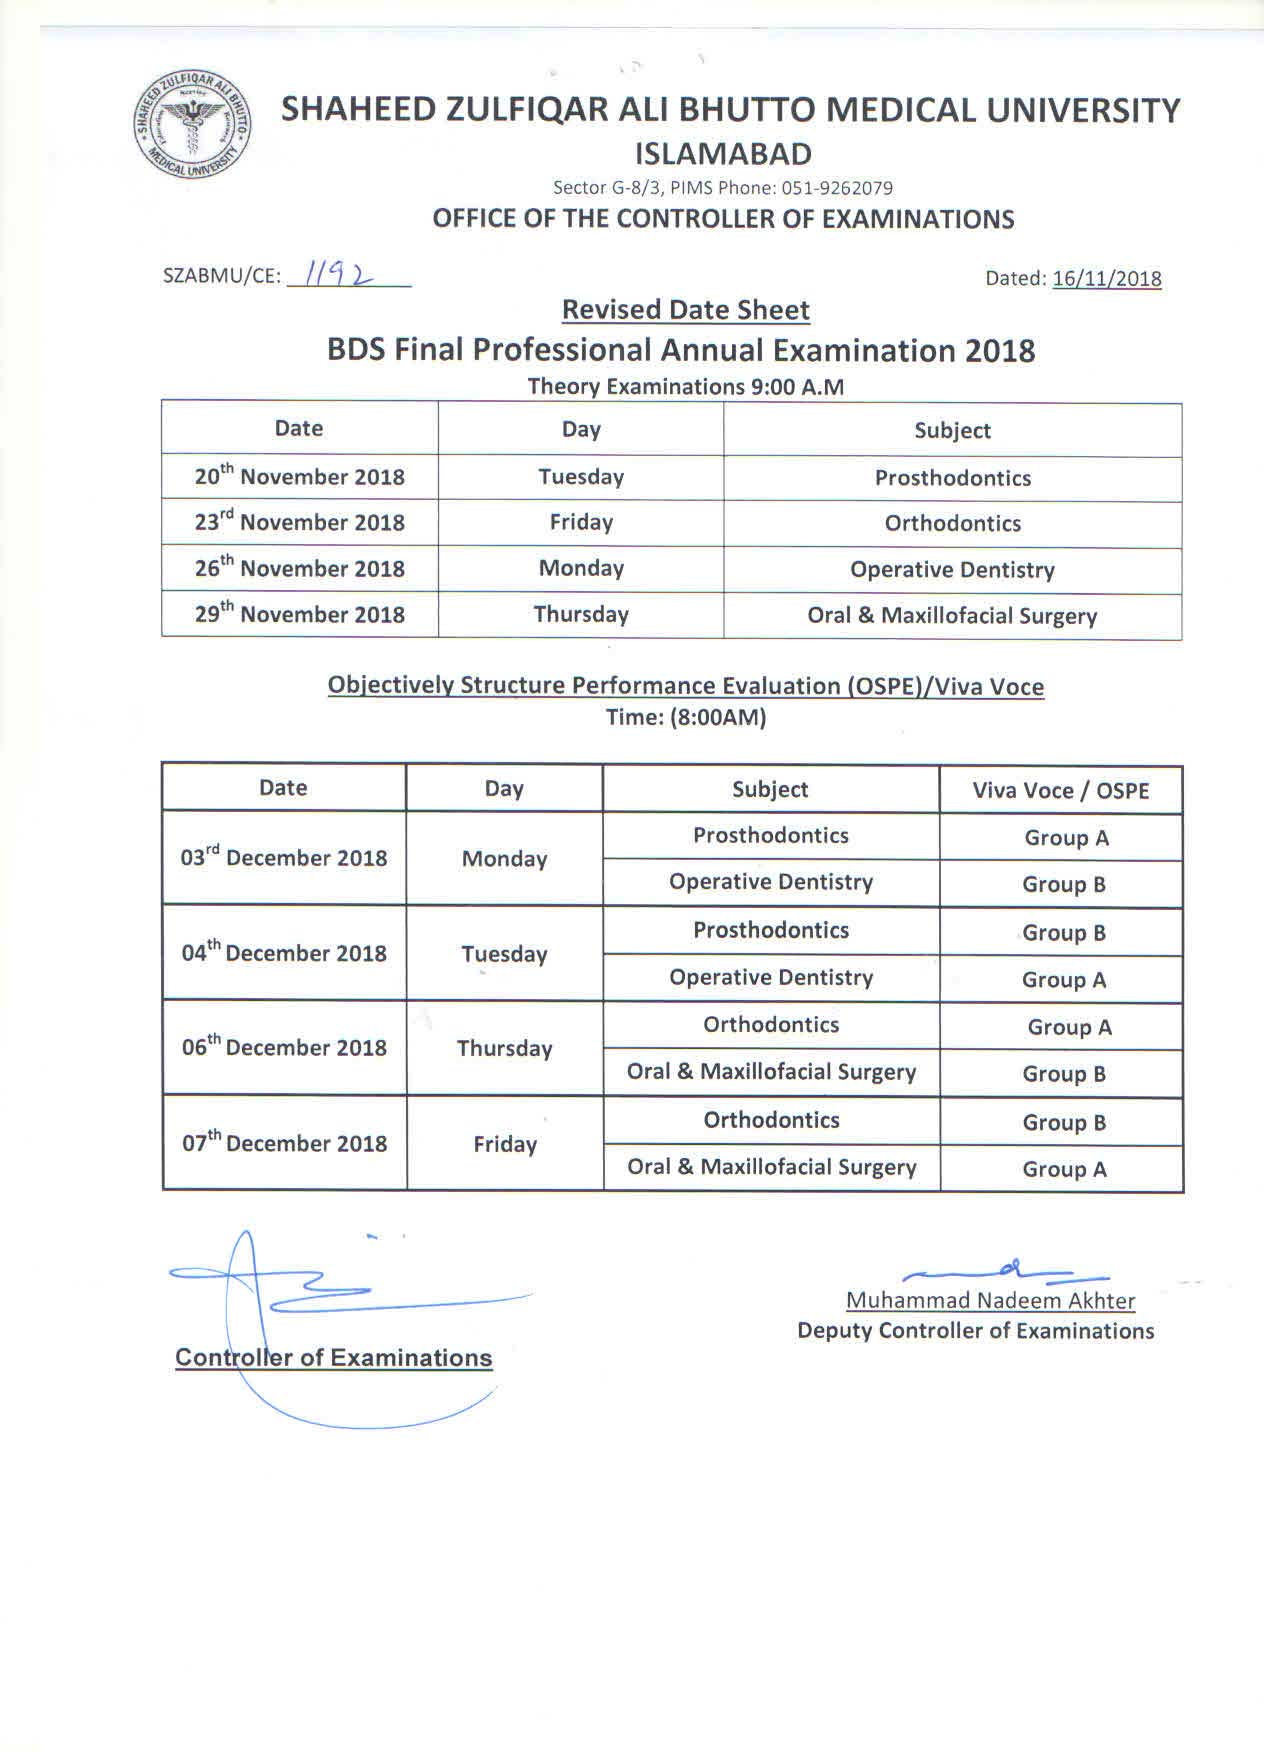 Revised Date Sheets for BDS Annual Examination, 2018